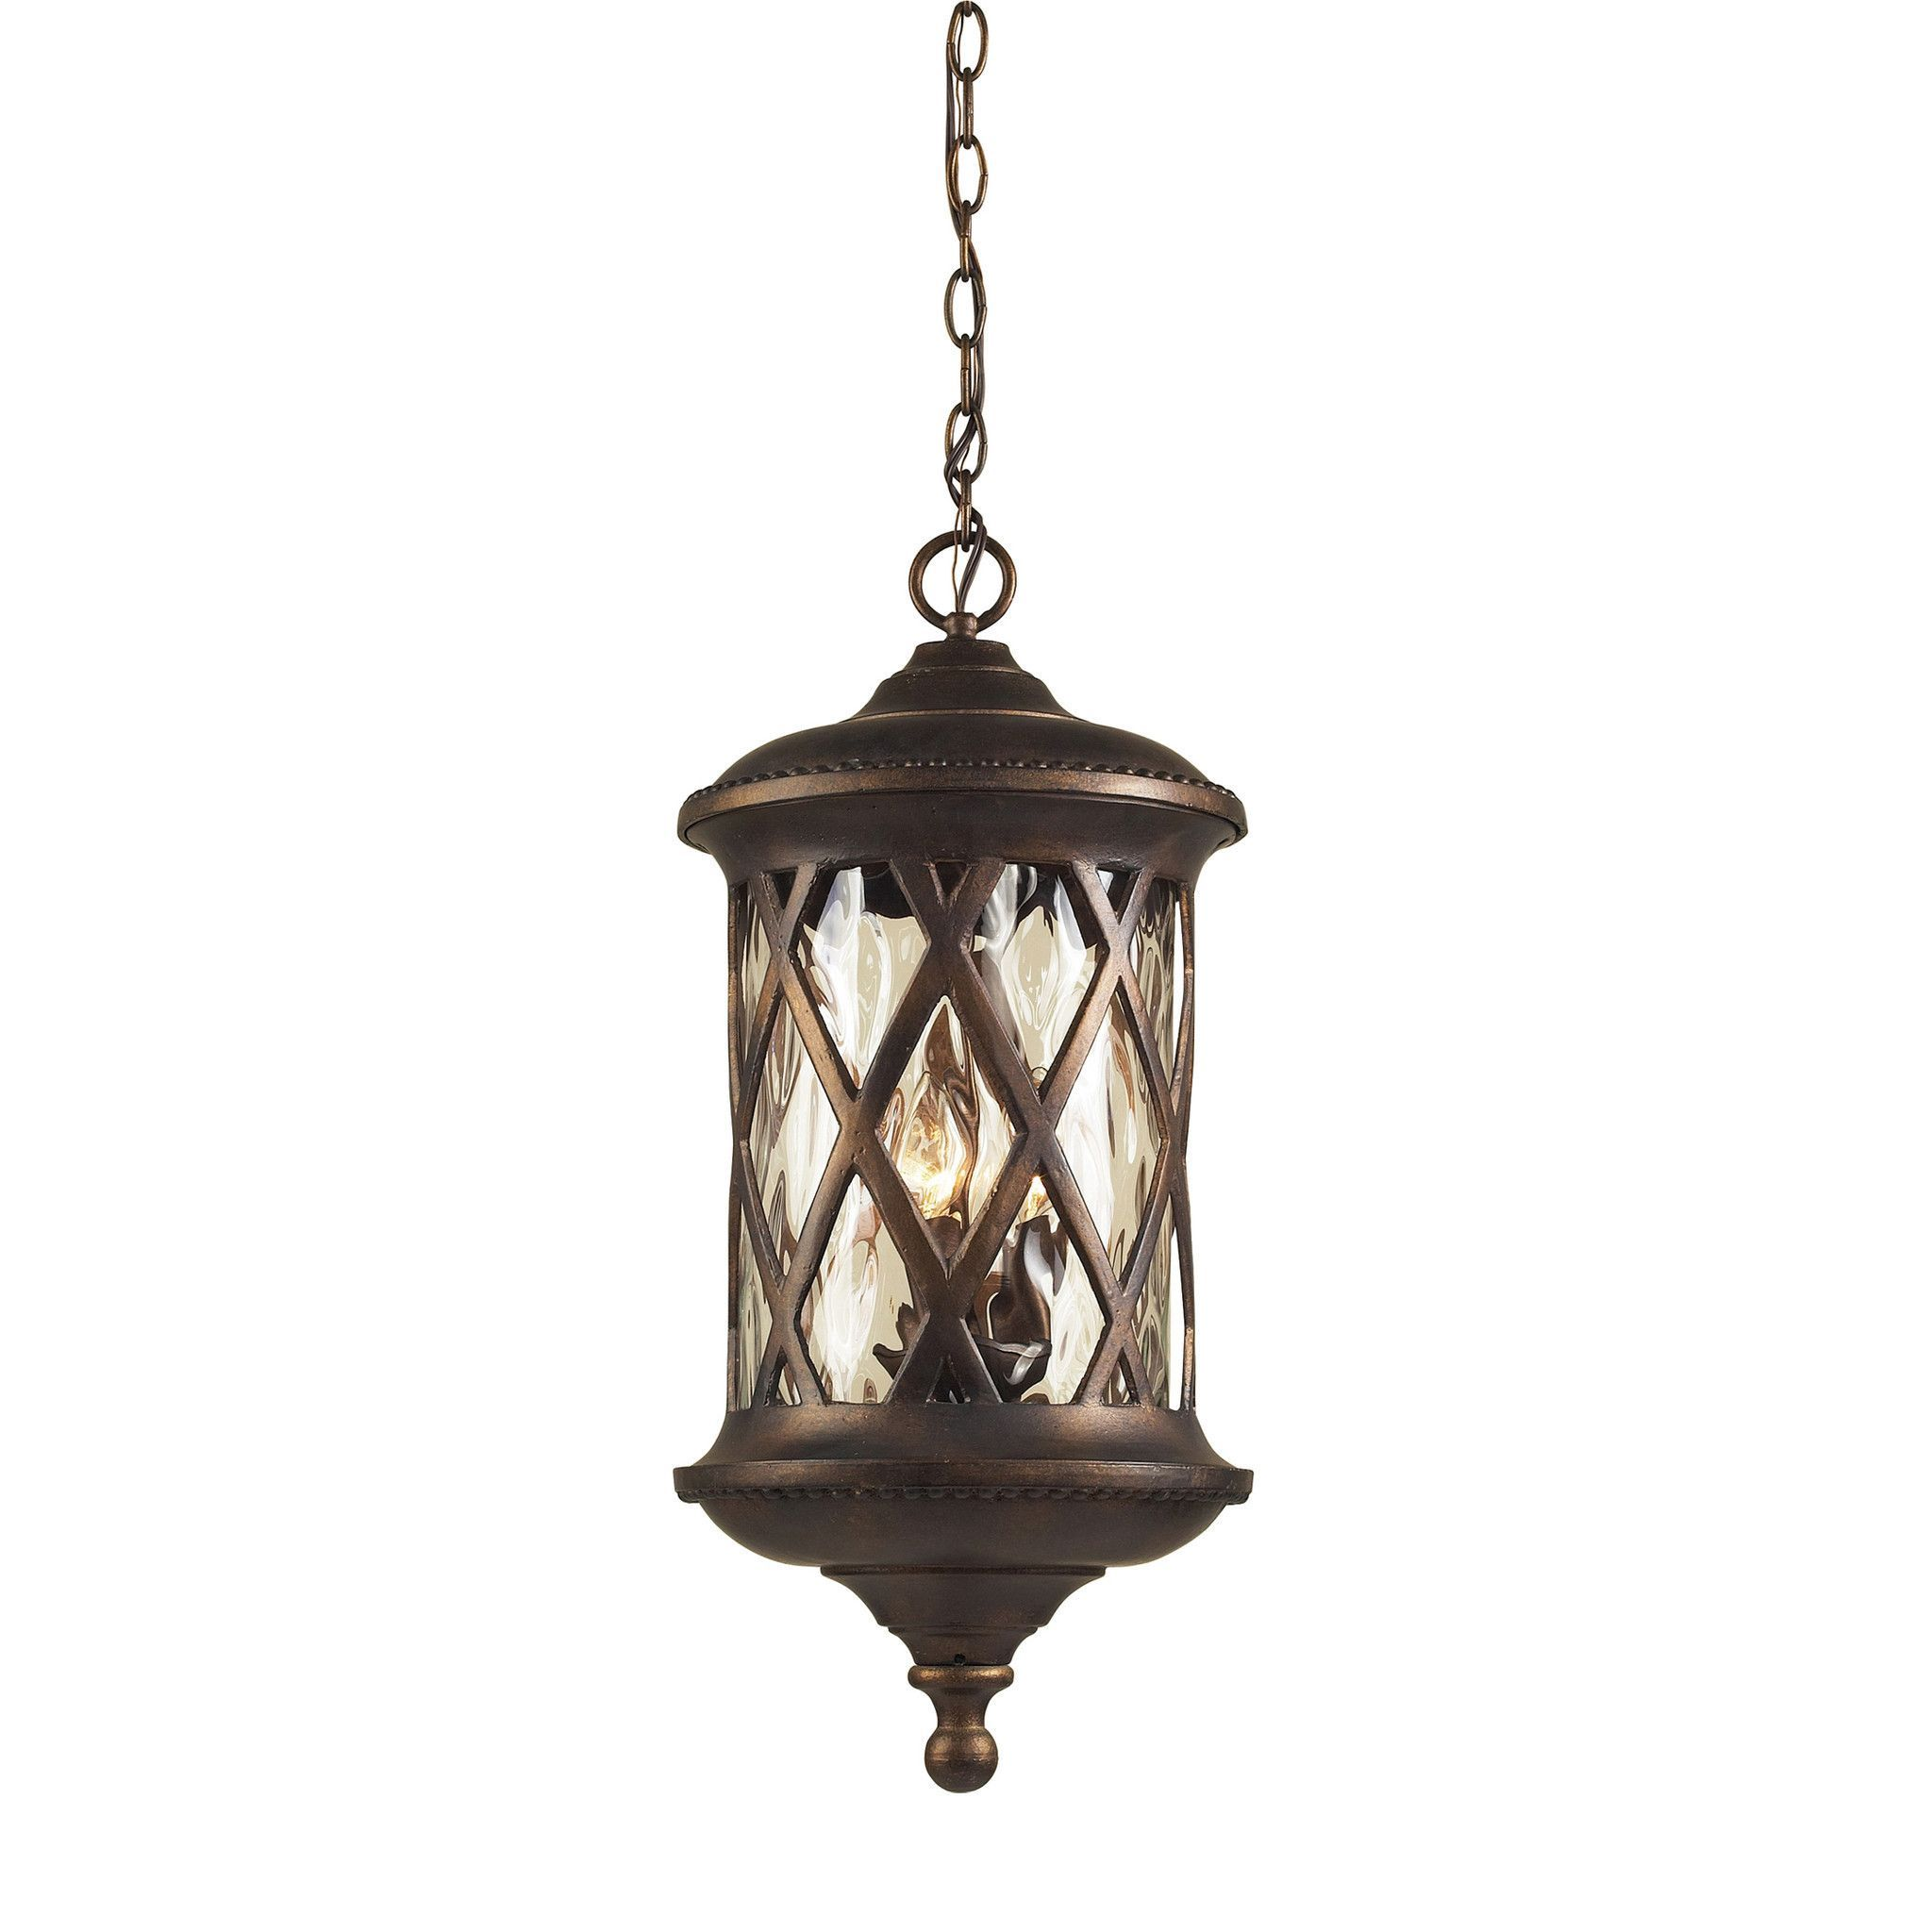 Elk lighting 420333 barrington 3 light outdoor pendant elk elk lighting 420333 barrington 3 light outdoor pendant arubaitofo Image collections